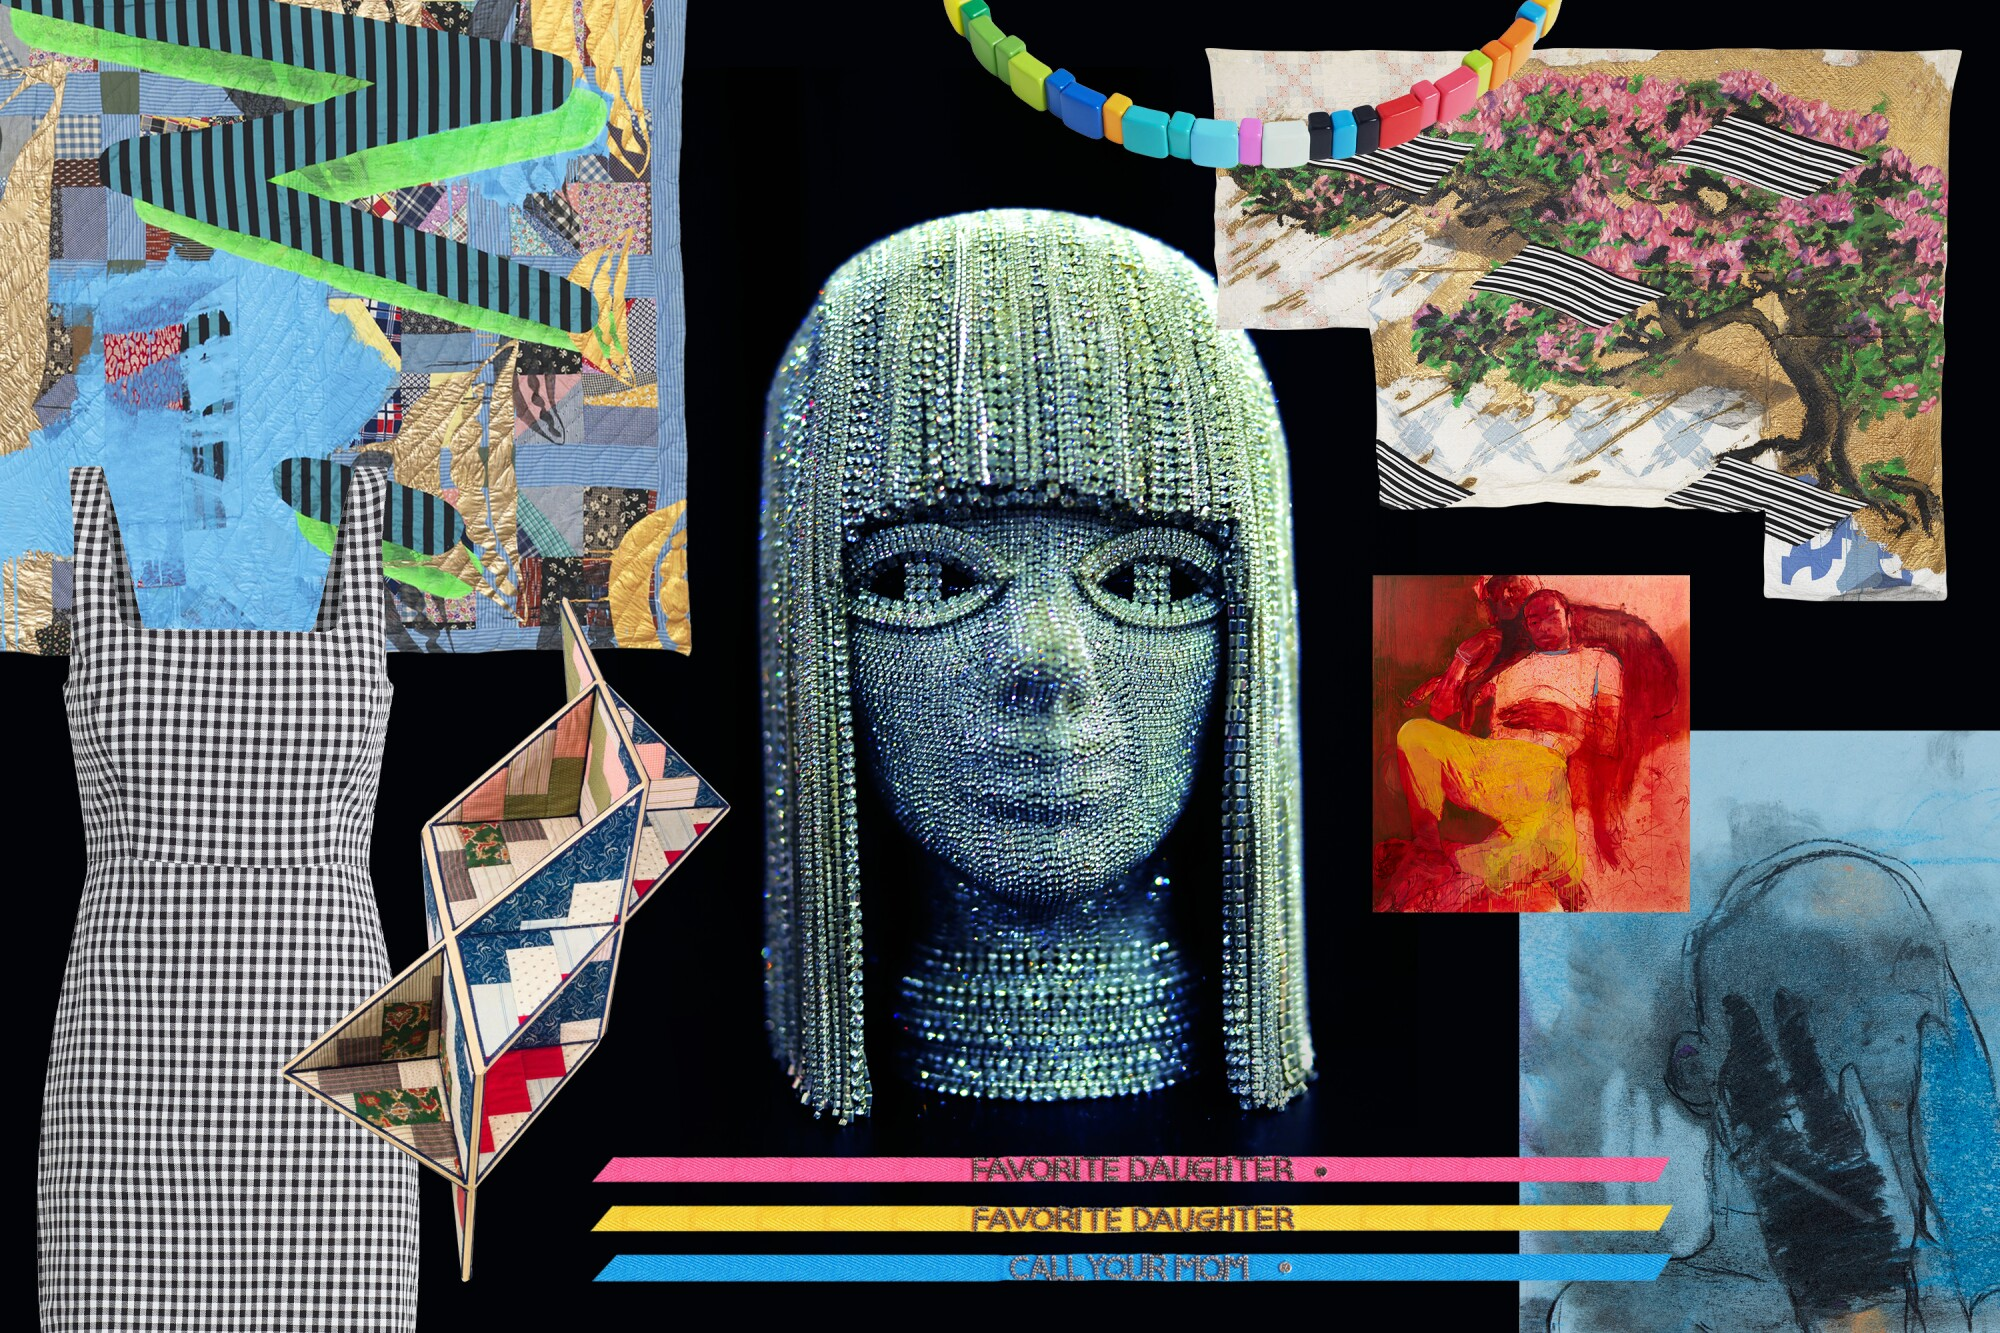 Collage of clothes, sculptures, art in 10 Los Angeles events.